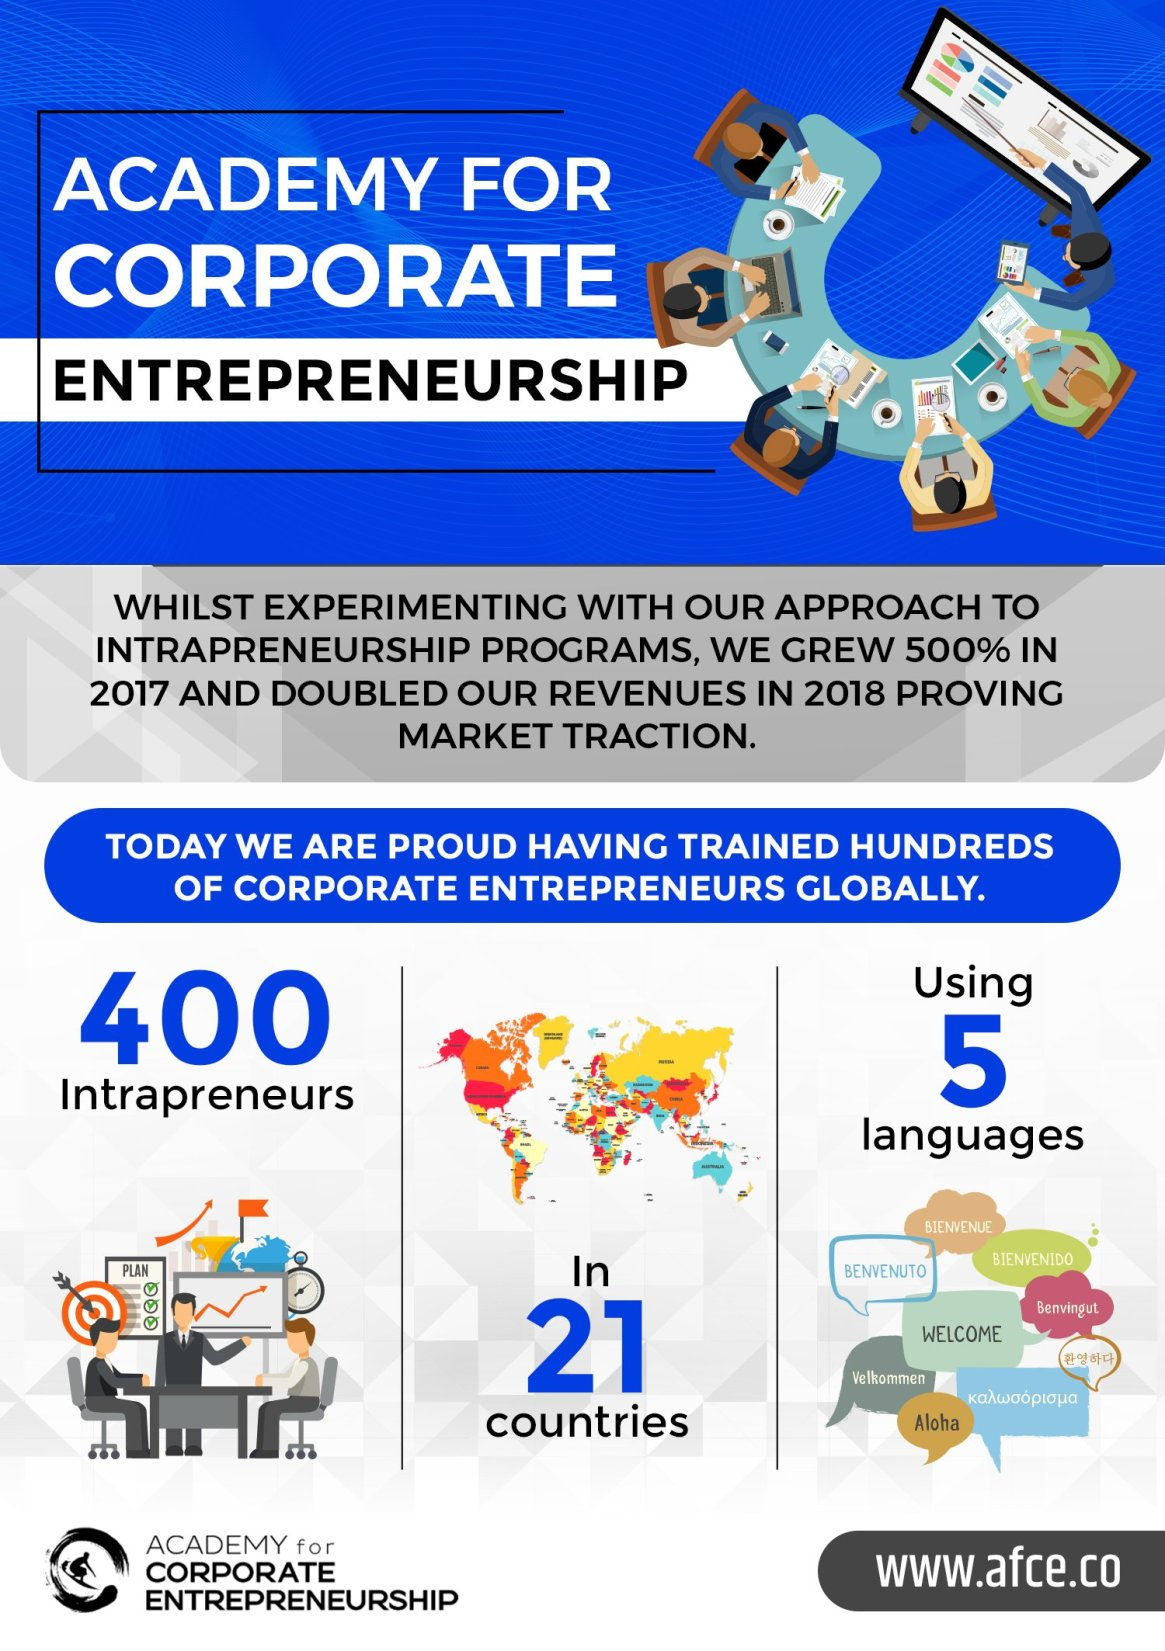 9 Lessons Learnt from Developing 400 Intrapreneurs